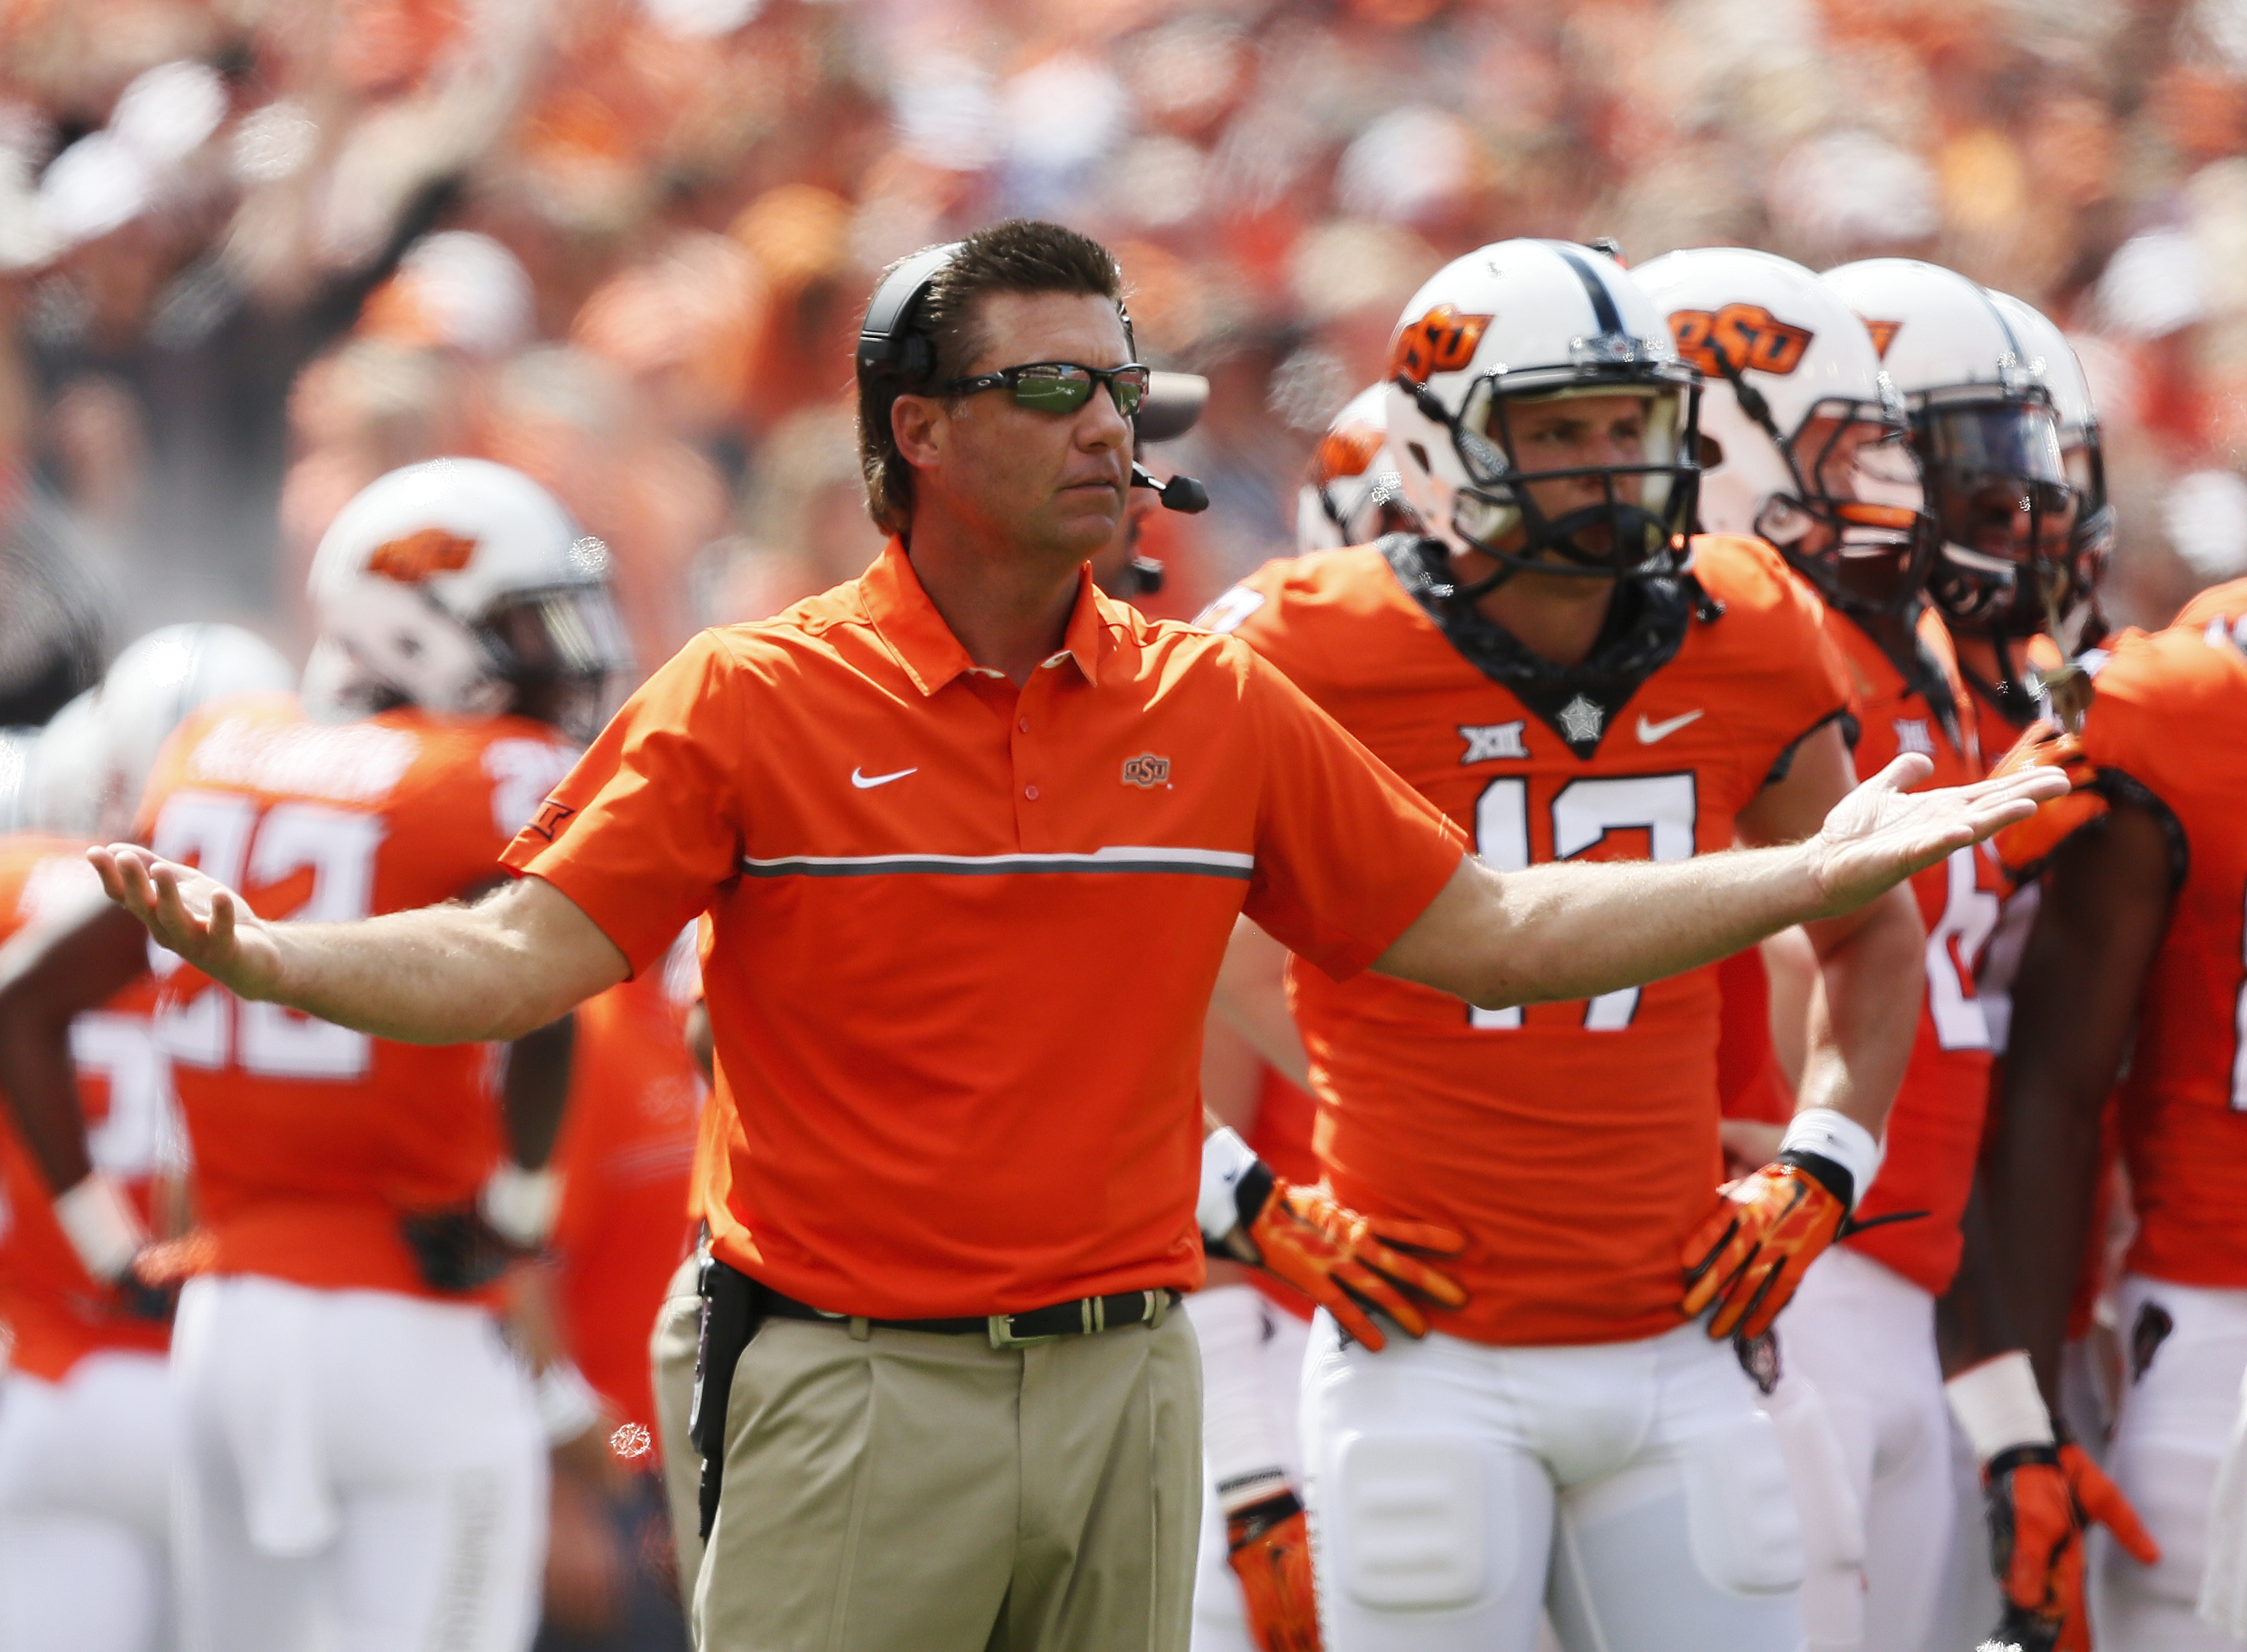 Oklahoma State head coach Mike Gundy gestures to an official in the first half of an NCAA college football game against Southeastern Louisiana in Stillwater, Okla., Saturday, Sept. 3, 2016. (AP Photo/Sue Ogrocki)